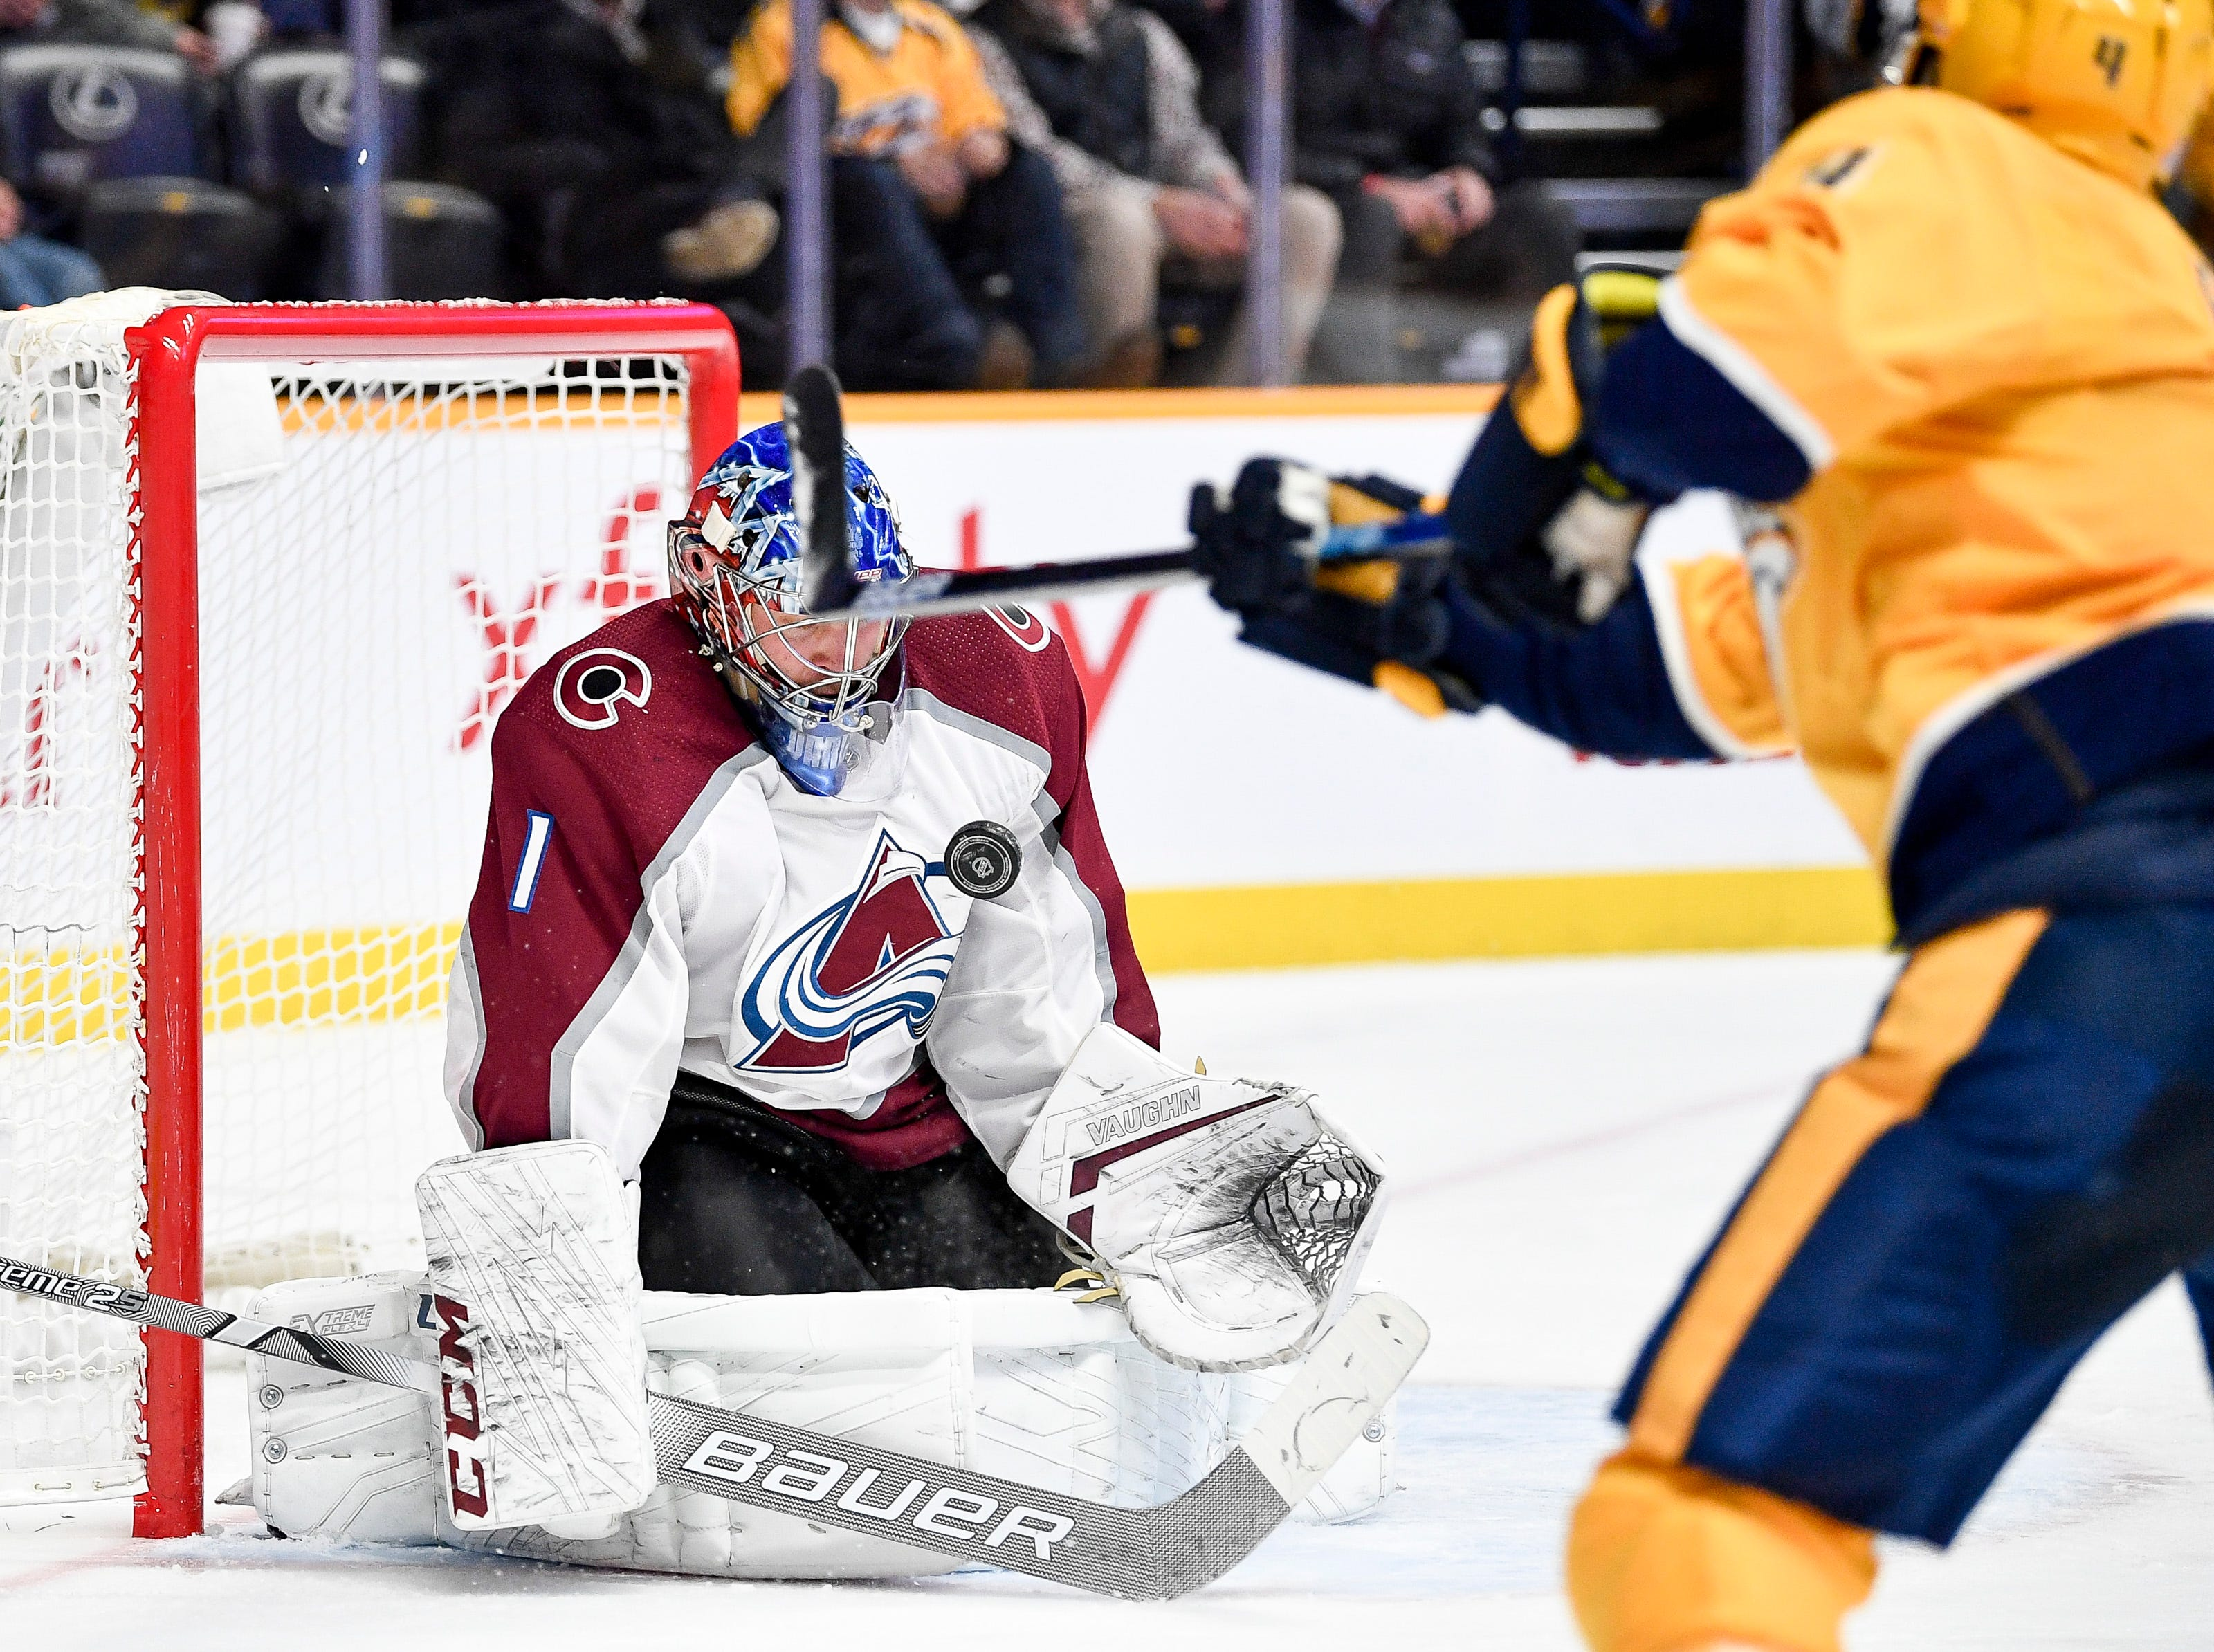 Colorado Avalanche goaltender Semyon Varlamov (1) stops a shot from Nashville Predators defenseman Ryan Ellis (4) during the third period at Bridgestone Arena in Nashville, Tenn., Tuesday, Nov. 27, 2018.